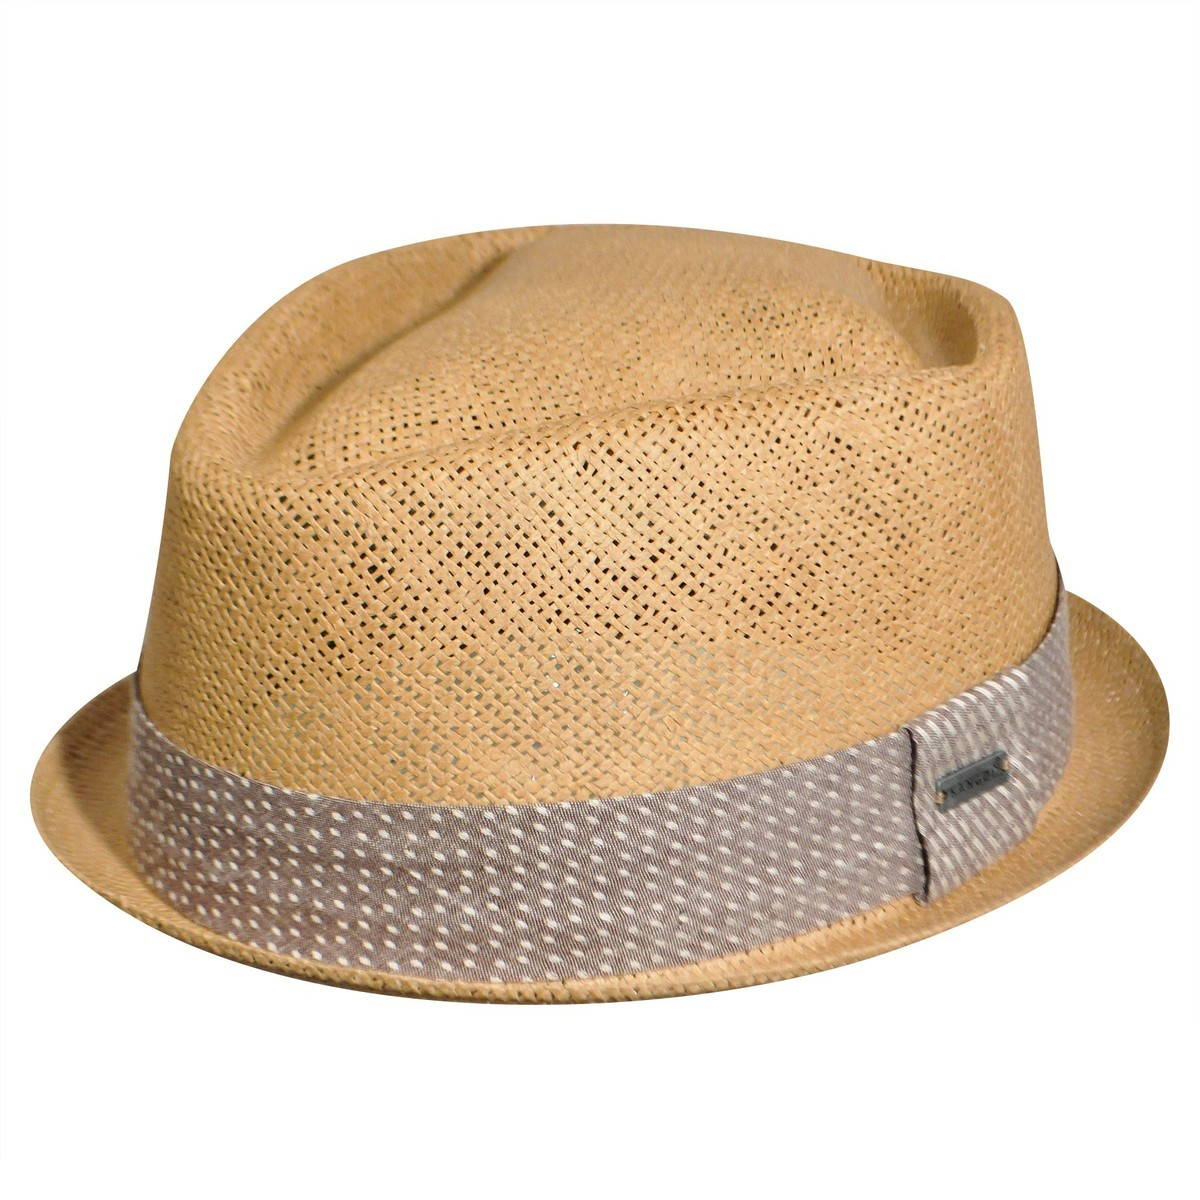 Kangol カンゴール Inset Player Tan Trilby 帽子 Tan